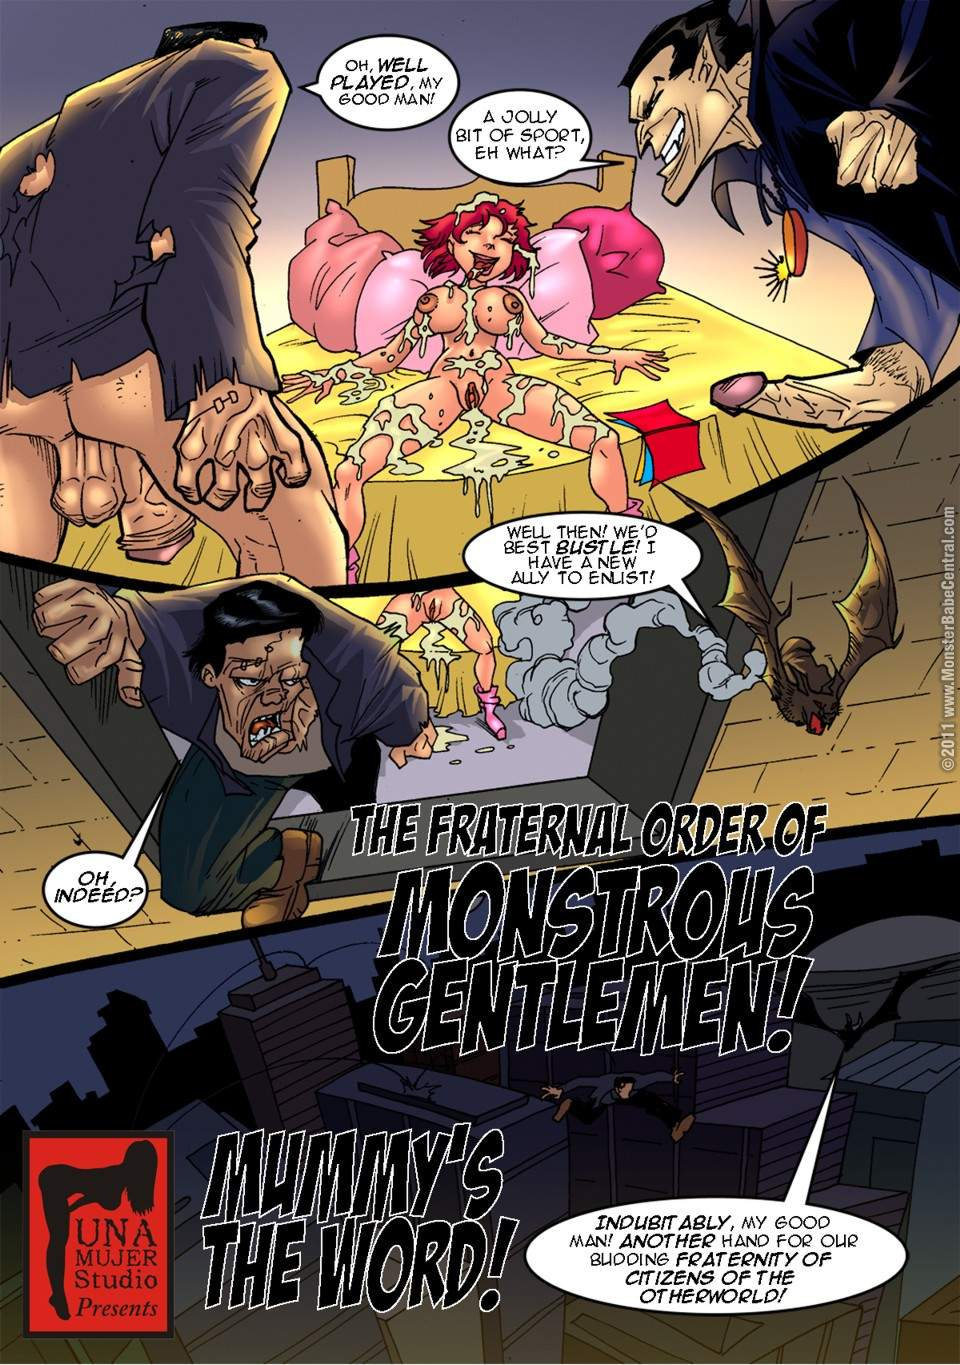 SureFap xxx porno Crossover - [MonsterBabeCentral] - The Fraternal Order of Monstrous Gentlemen! - Issue 2 - Living Mummy